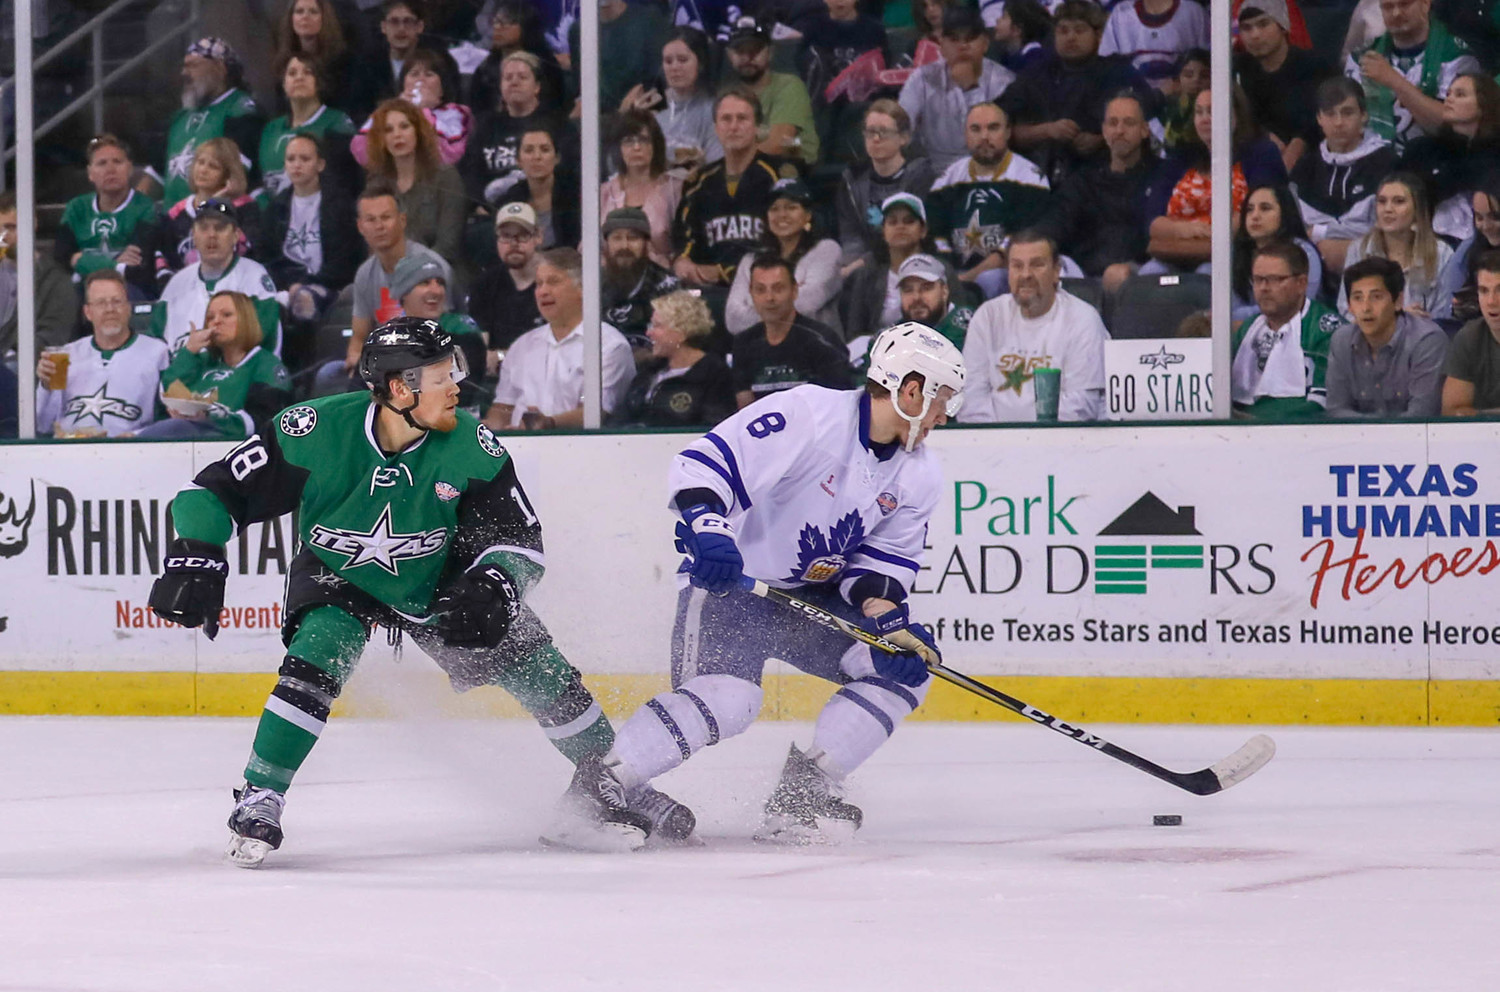 Brent Regner and the Stars fell to the Marlies 2-1 in Game 3 of the Calder Cup Finals Tuesday night at the HEB Center. Toronto leads the best-of-seven series 2-1 with Game 4 set for Thursday at 7 p.m.